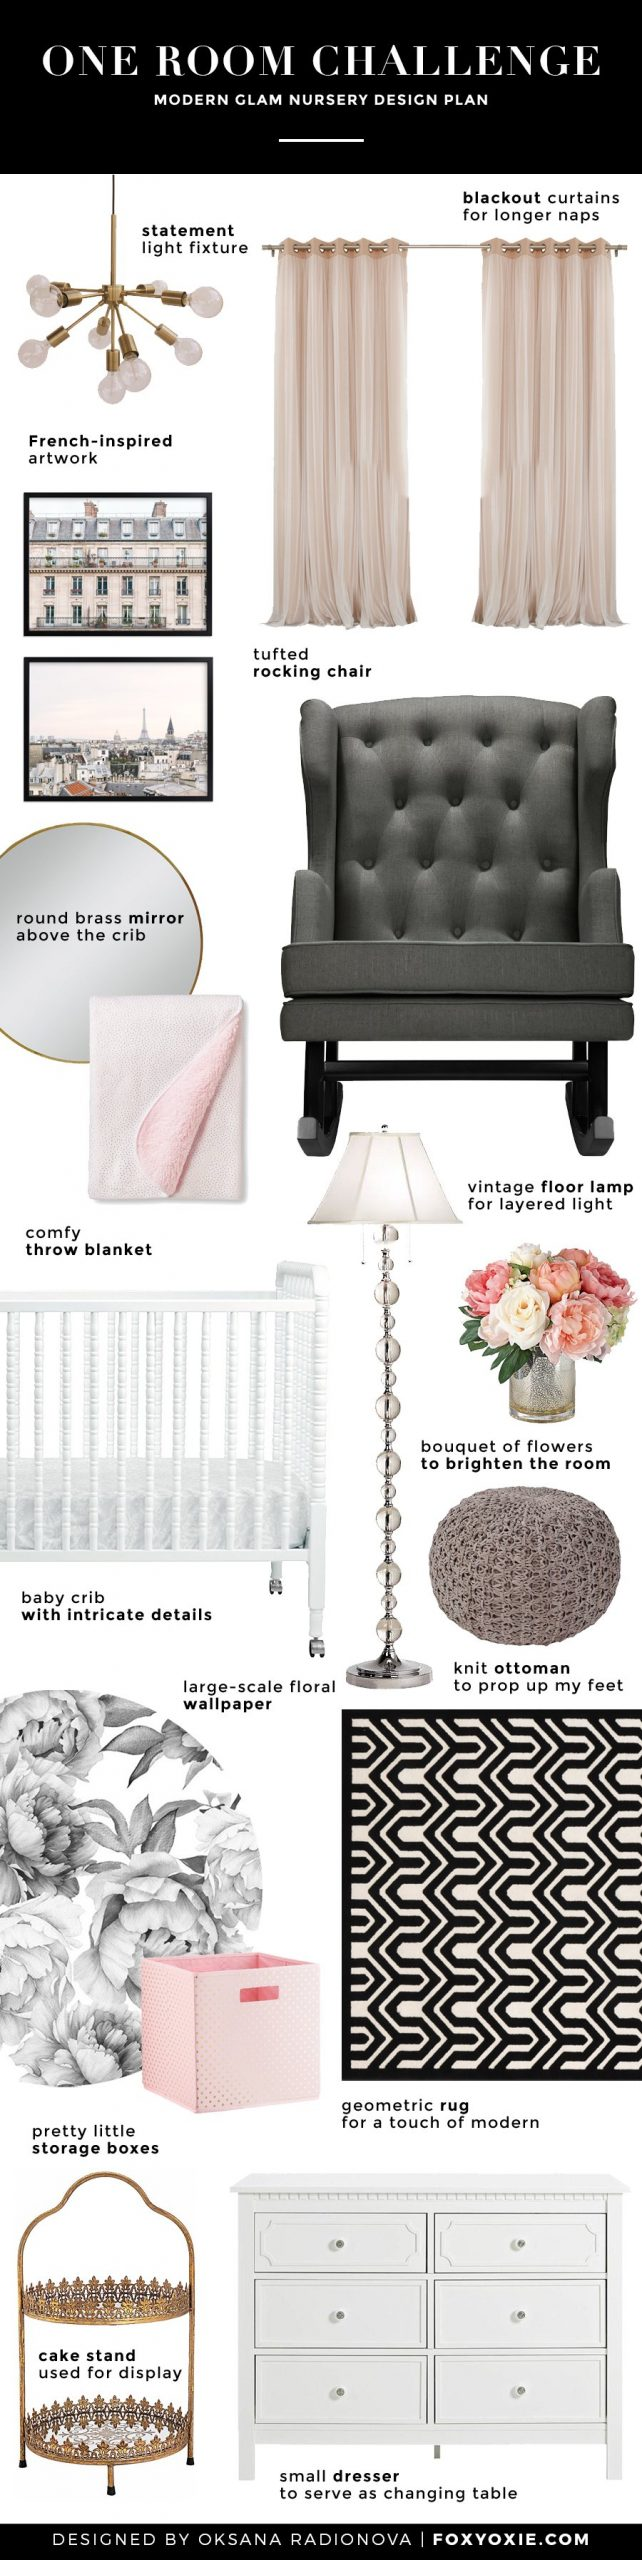 Spring 2017 One Room Challenge, Week 1: A Modern Glam Nursery for Our Baby Girl